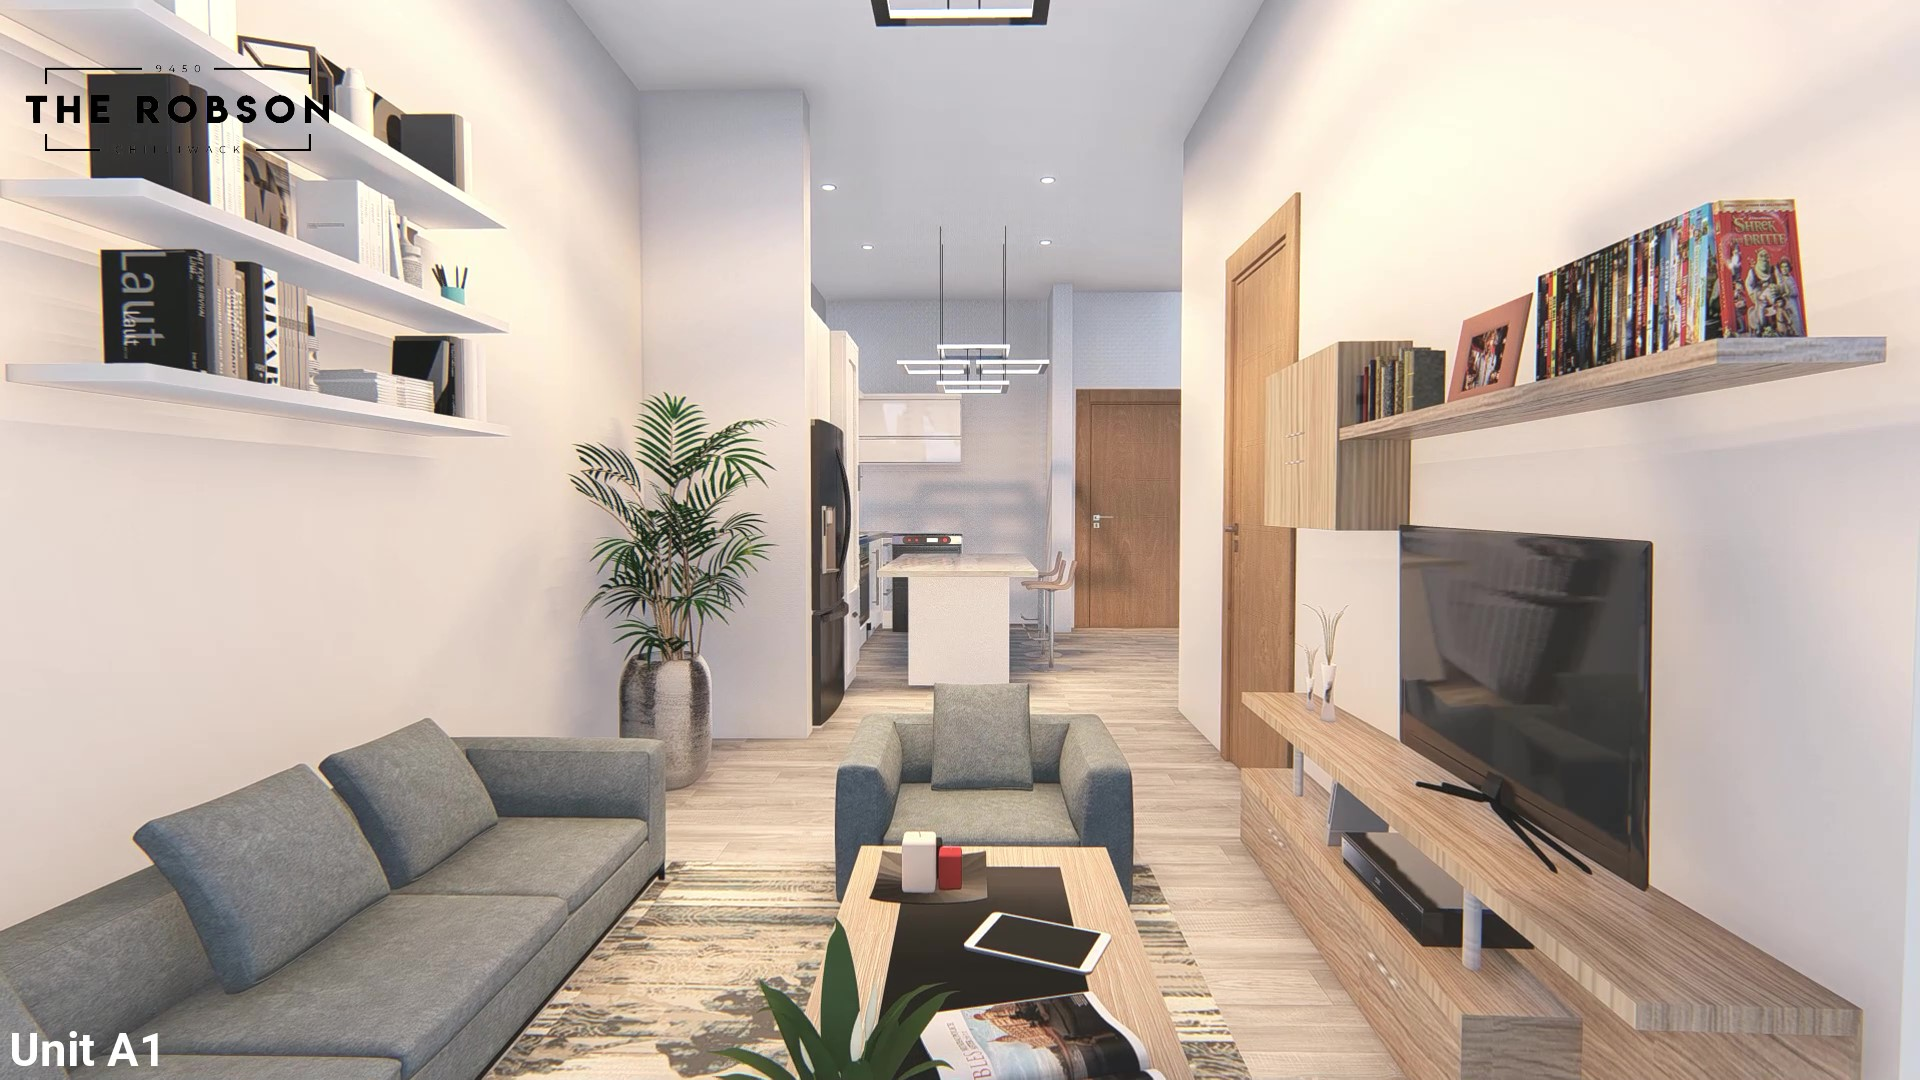 Rendering Of The Robson Living Room In Chilliwack BC